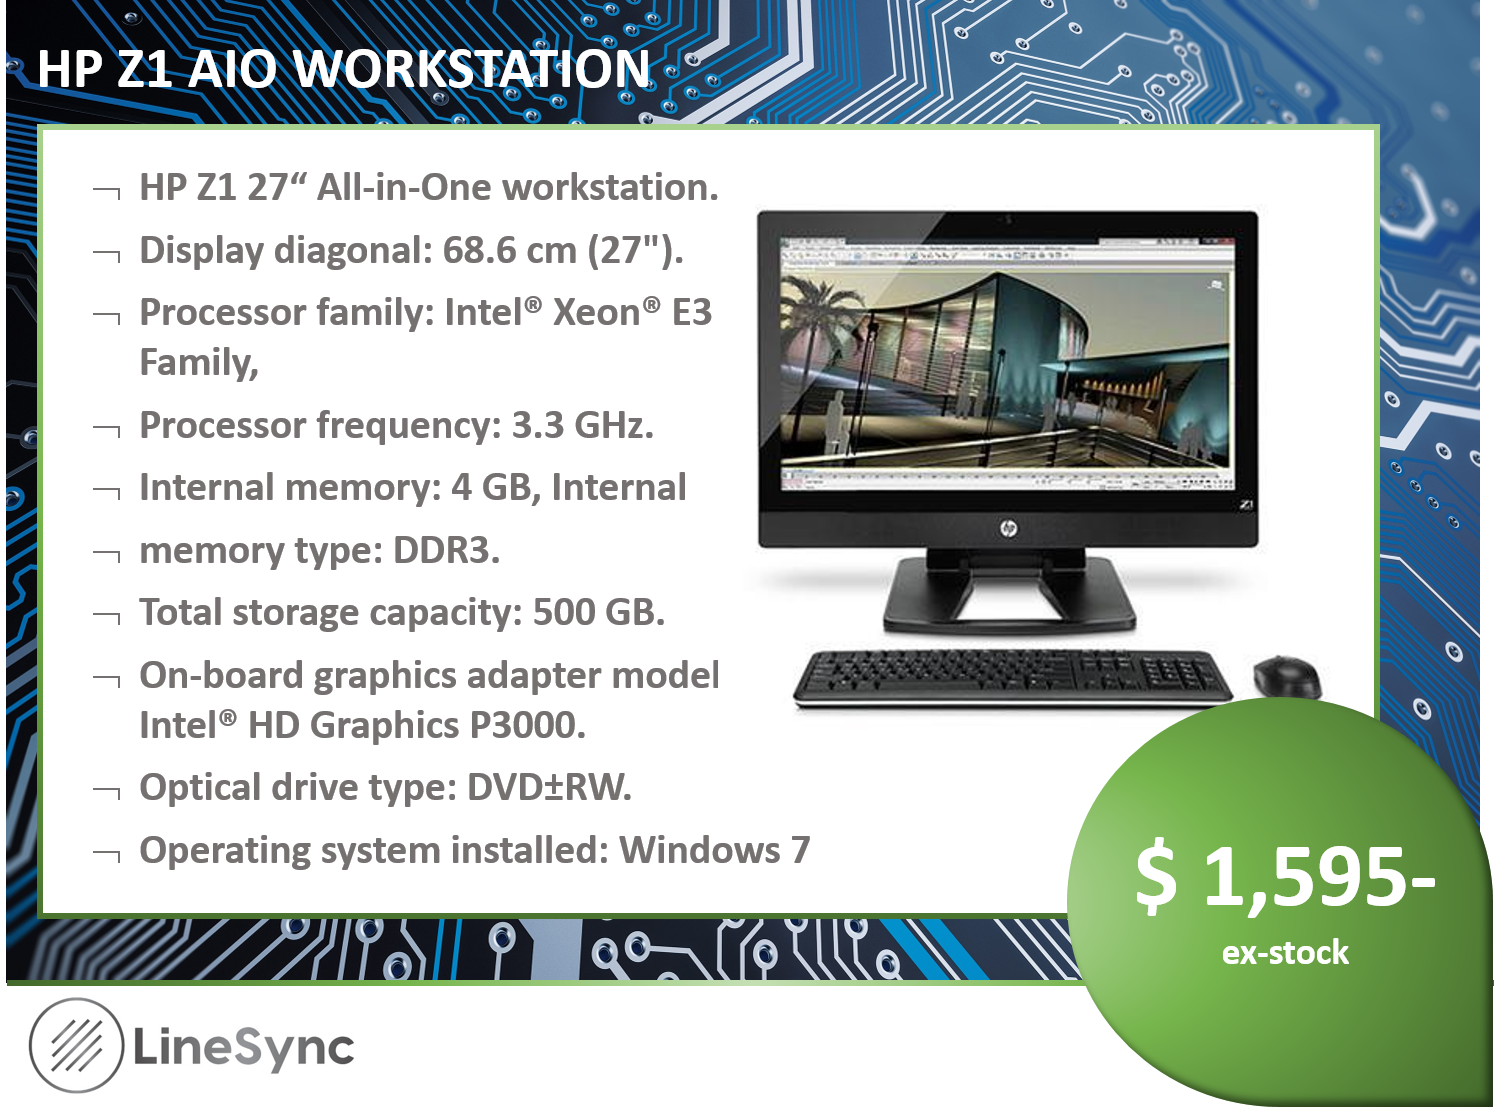 August _ Week 4 _ HP Z1 AIO Workstation _ USD.png